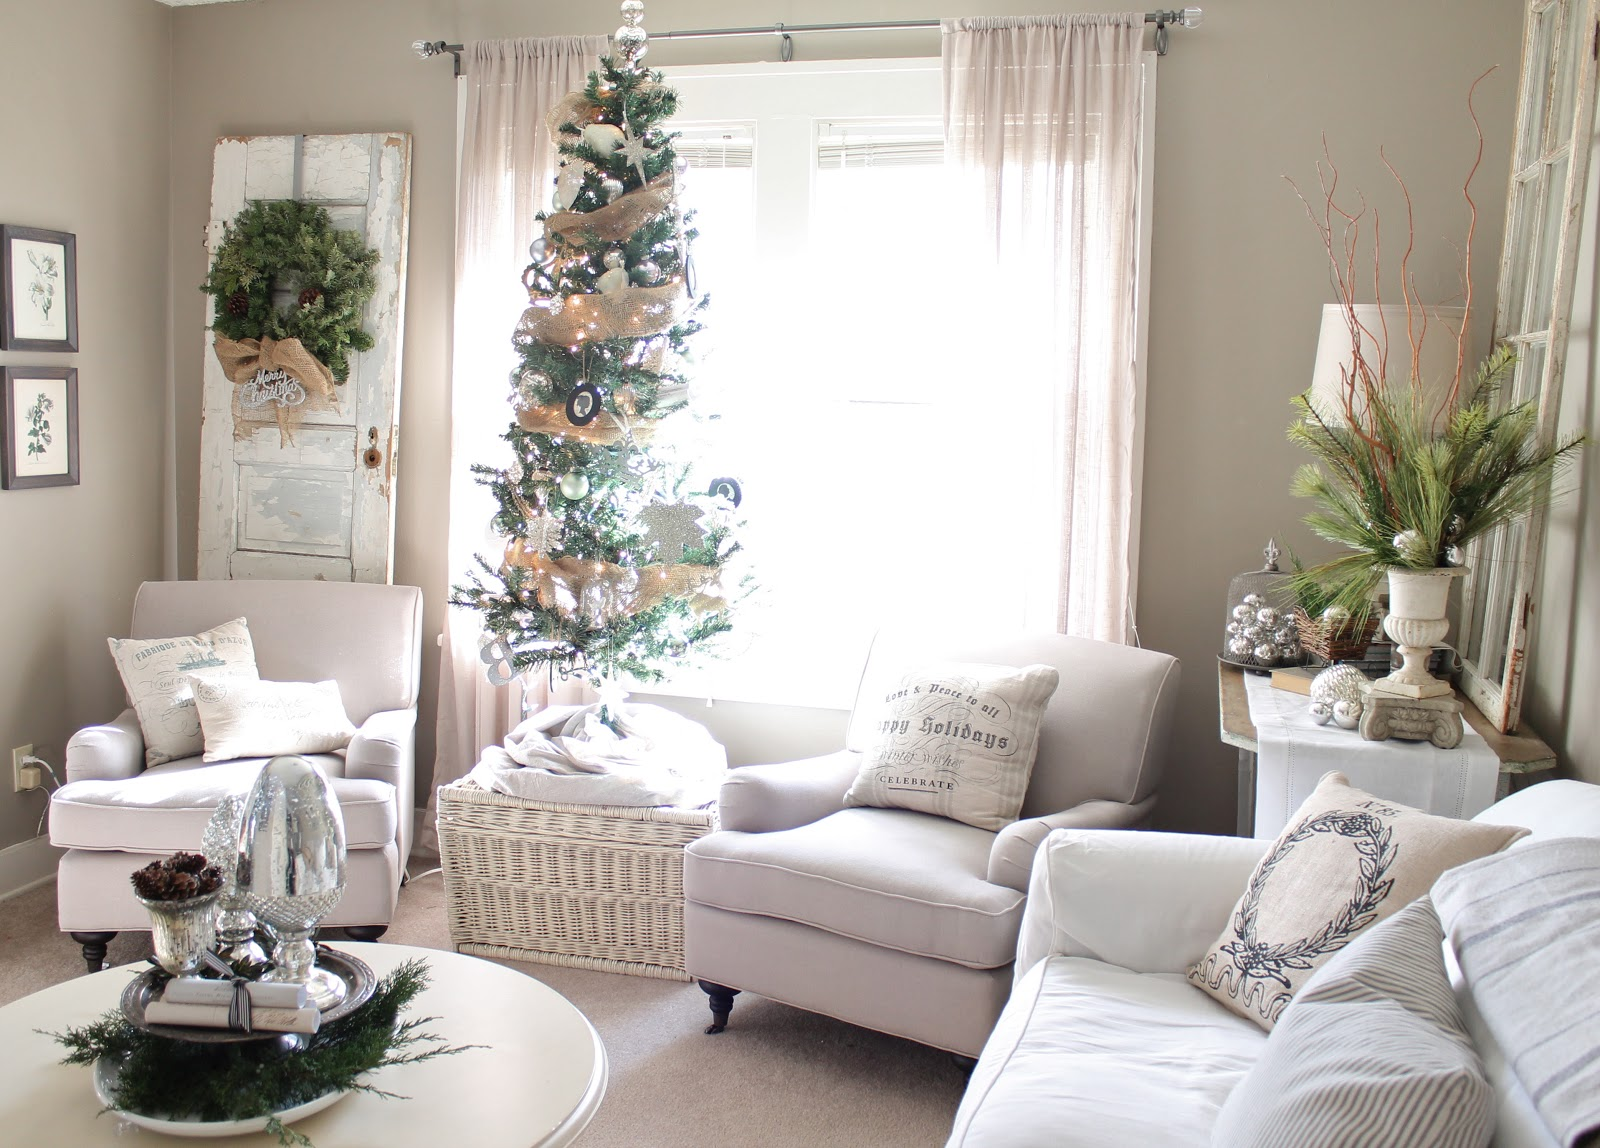 Cool White Christmas Living Room Idea: Source